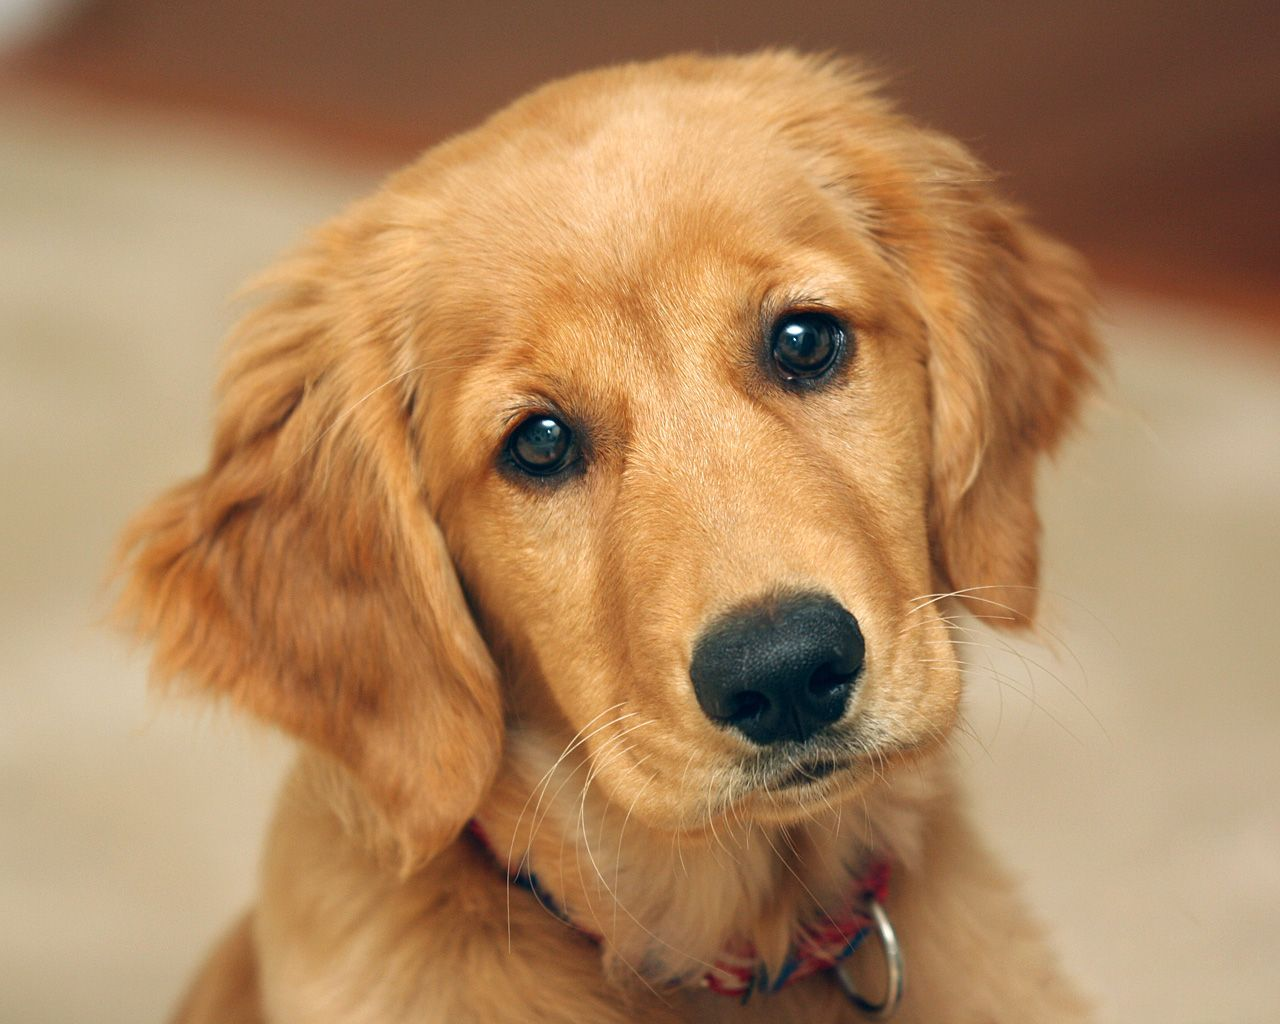 Golden Retriever Dog Breeds Retriever Puppy Golden Retriever Puppy